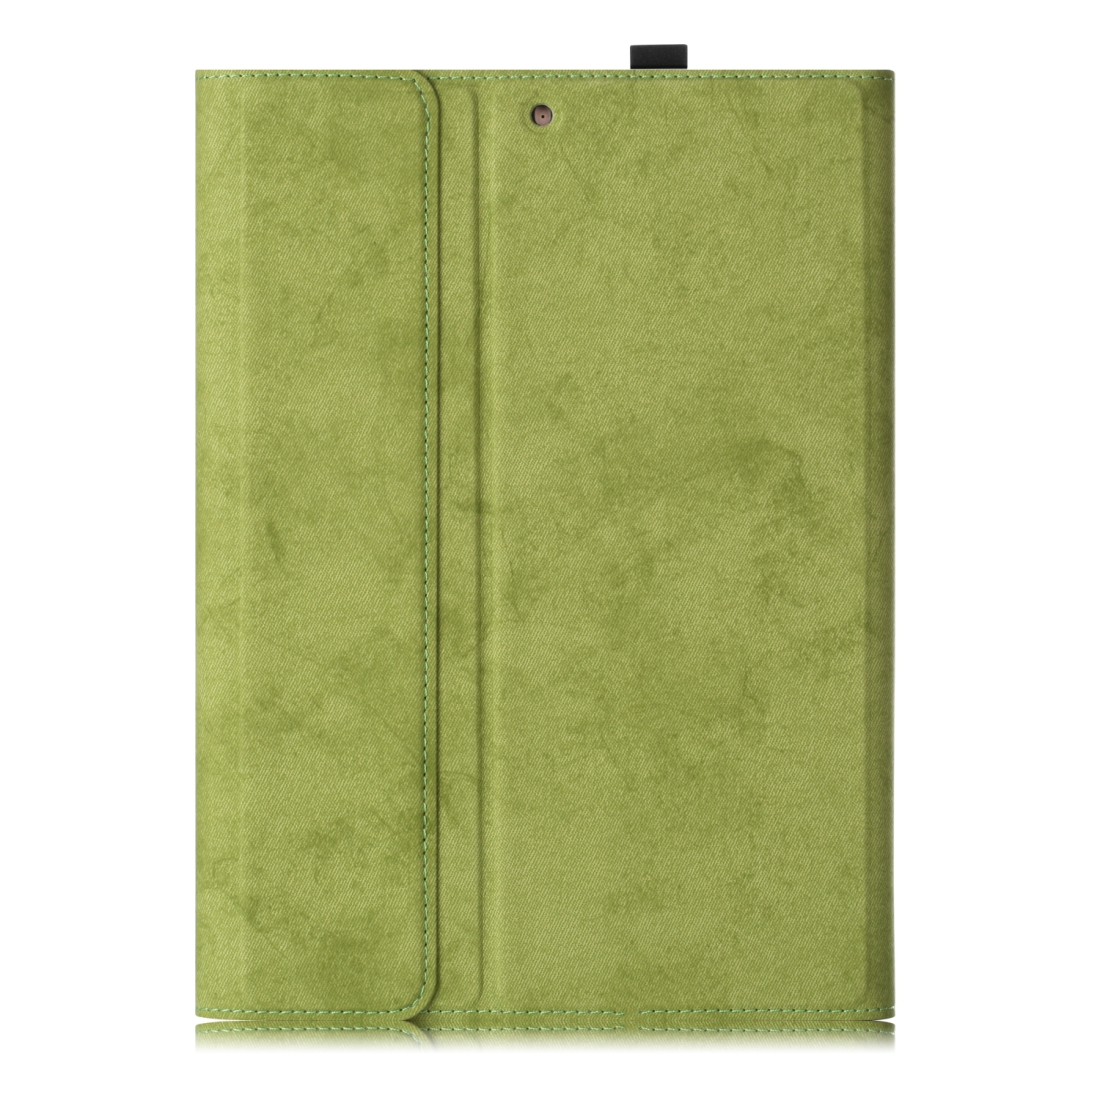 iPad Air 2 Case For iPad Air /Air 2 (2019), Leather Case Without Keyboard (Green)